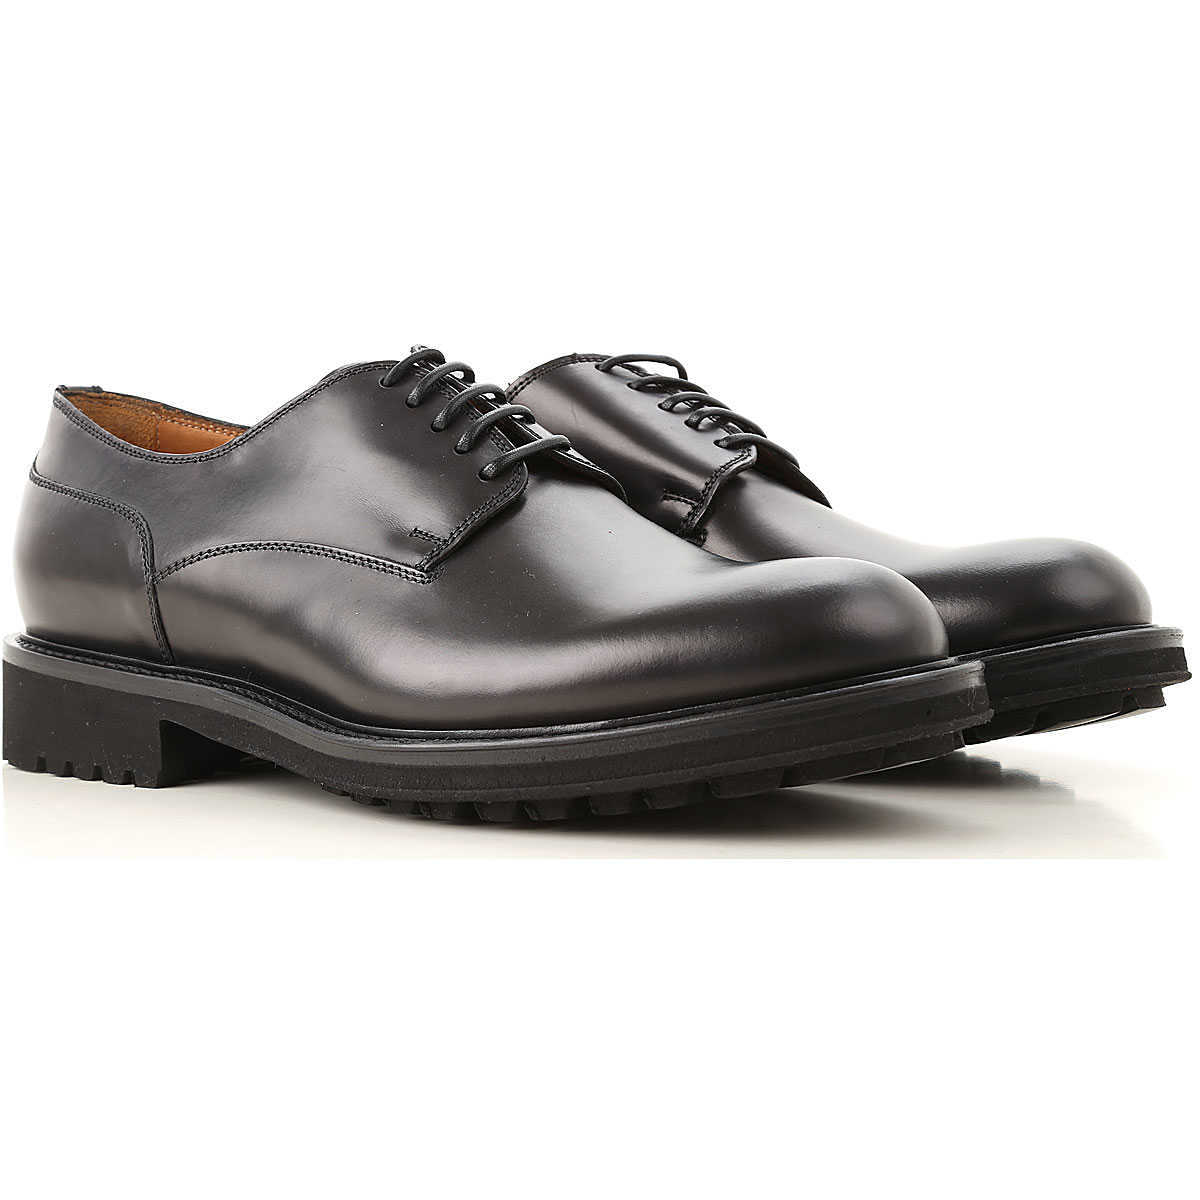 Doucals Lace Up Shoes for Men Oxfords Derbies and Brogues On Sale - GOOFASH